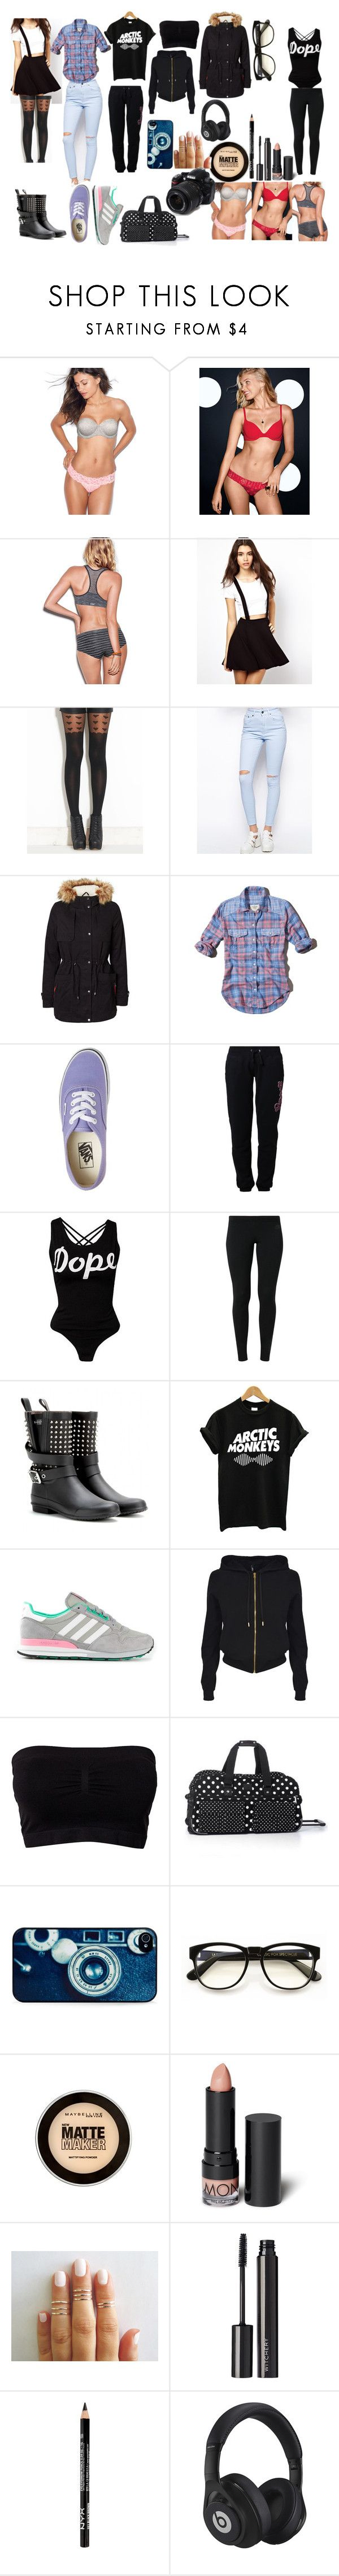 """""""Untitled #49"""" by antoniadouzi ❤ liked on Polyvore featuring Victoria's Secret PINK, ASOS, Pamela Mann, The Ragged Priest, Vero Moda, Abercrombie & Fitch, Vans, Russell Athletic, NIKE and Burberry"""